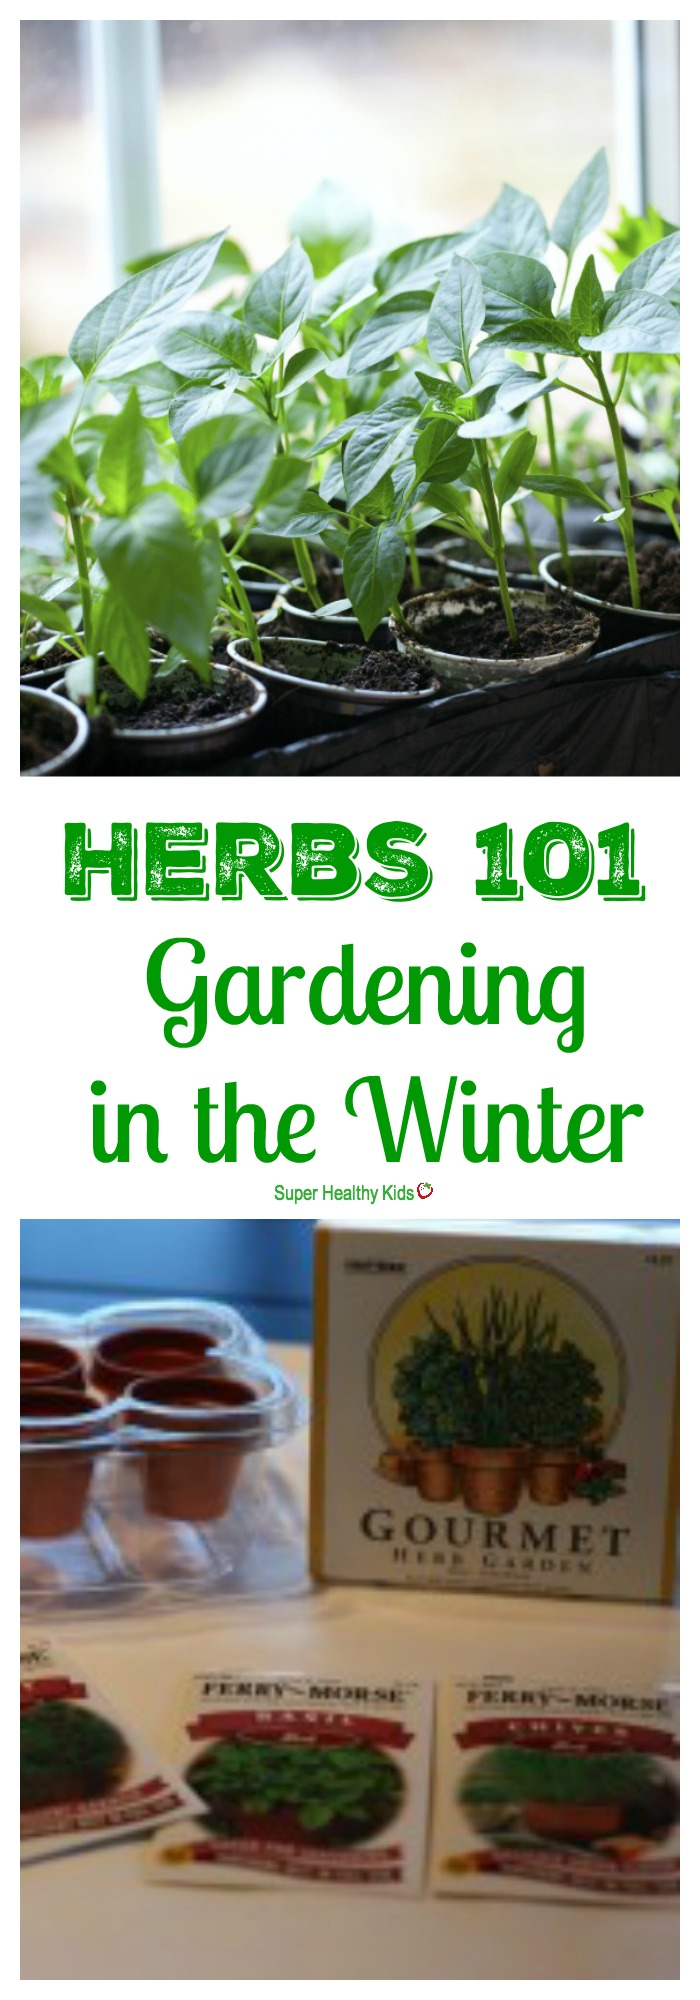 GARDENING - Gardening in the Winter - Herbs 101. Put your green thumb to good use during the winter months! http://www.superhealthykids.com/gardening-in-the-winter-herbs-101/